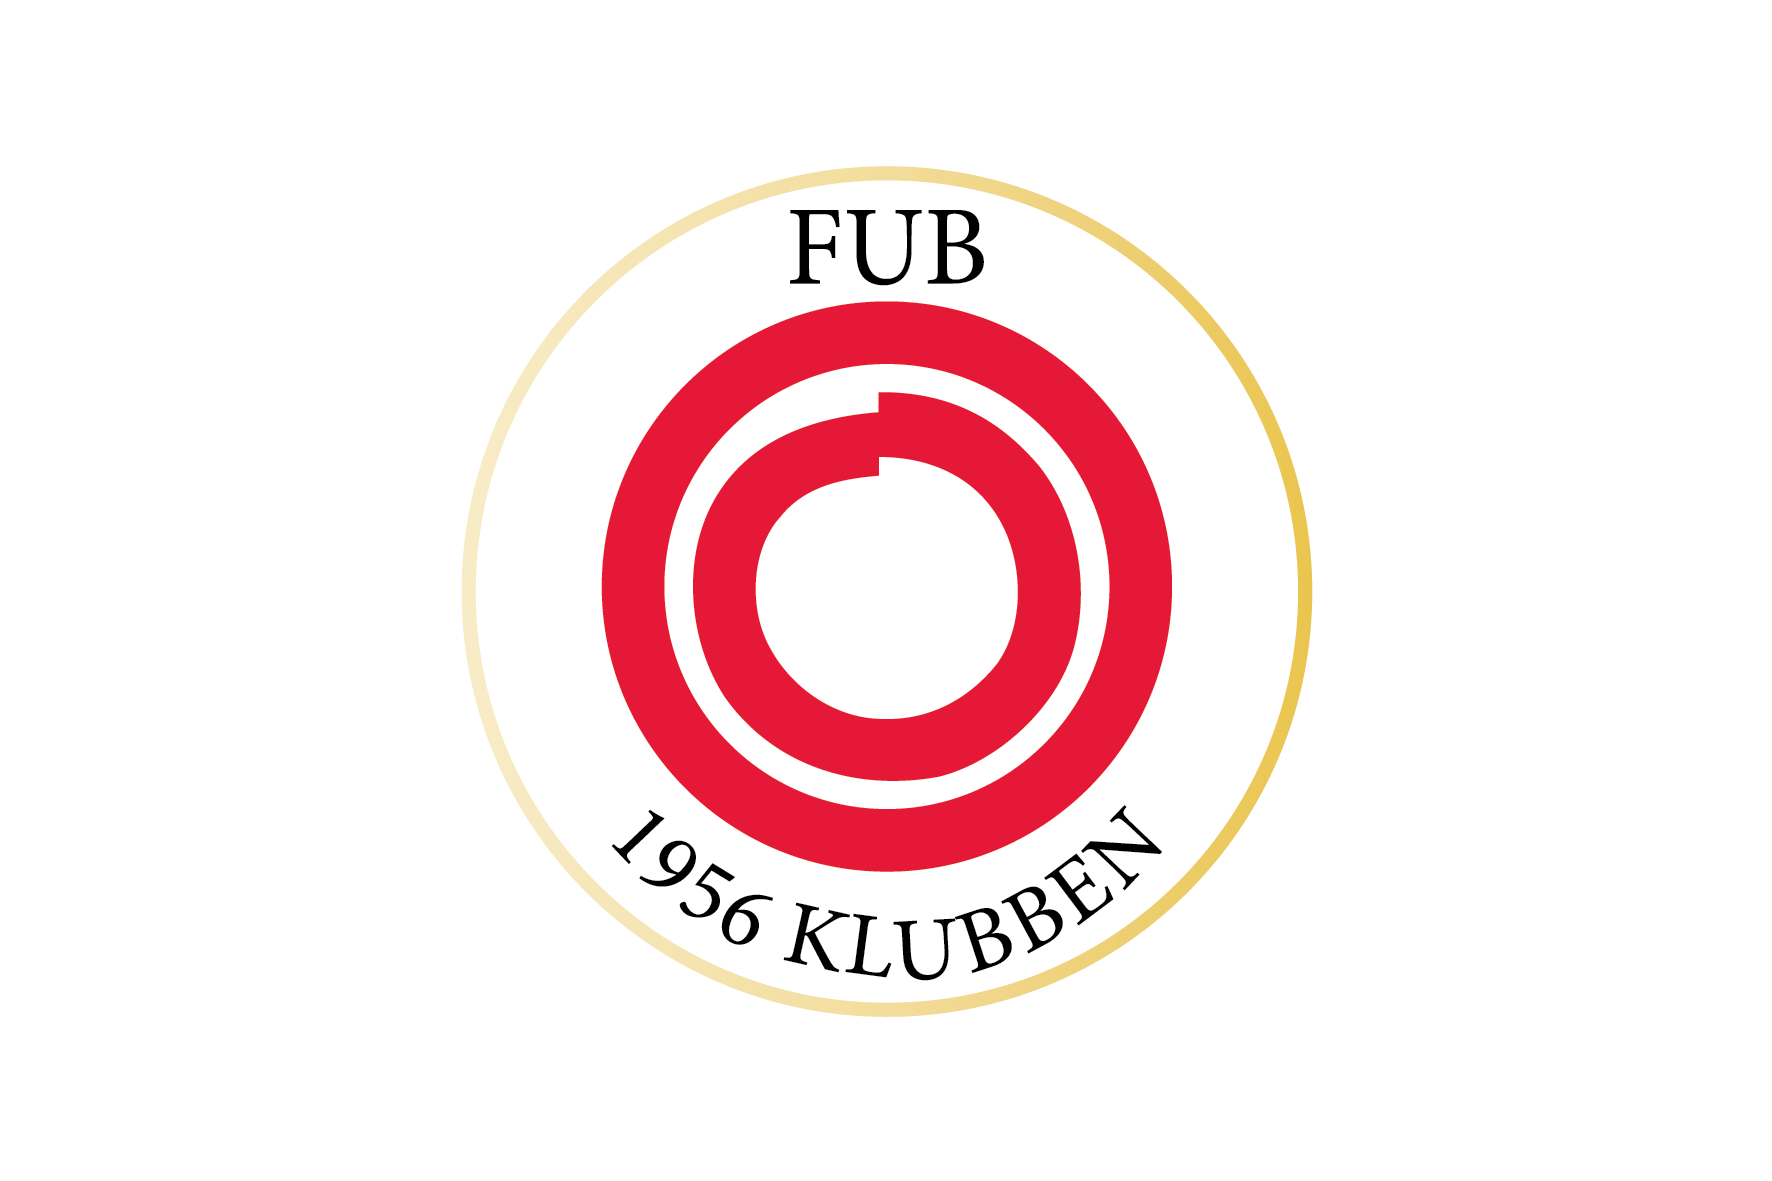 for_webben_1956_klubben-01